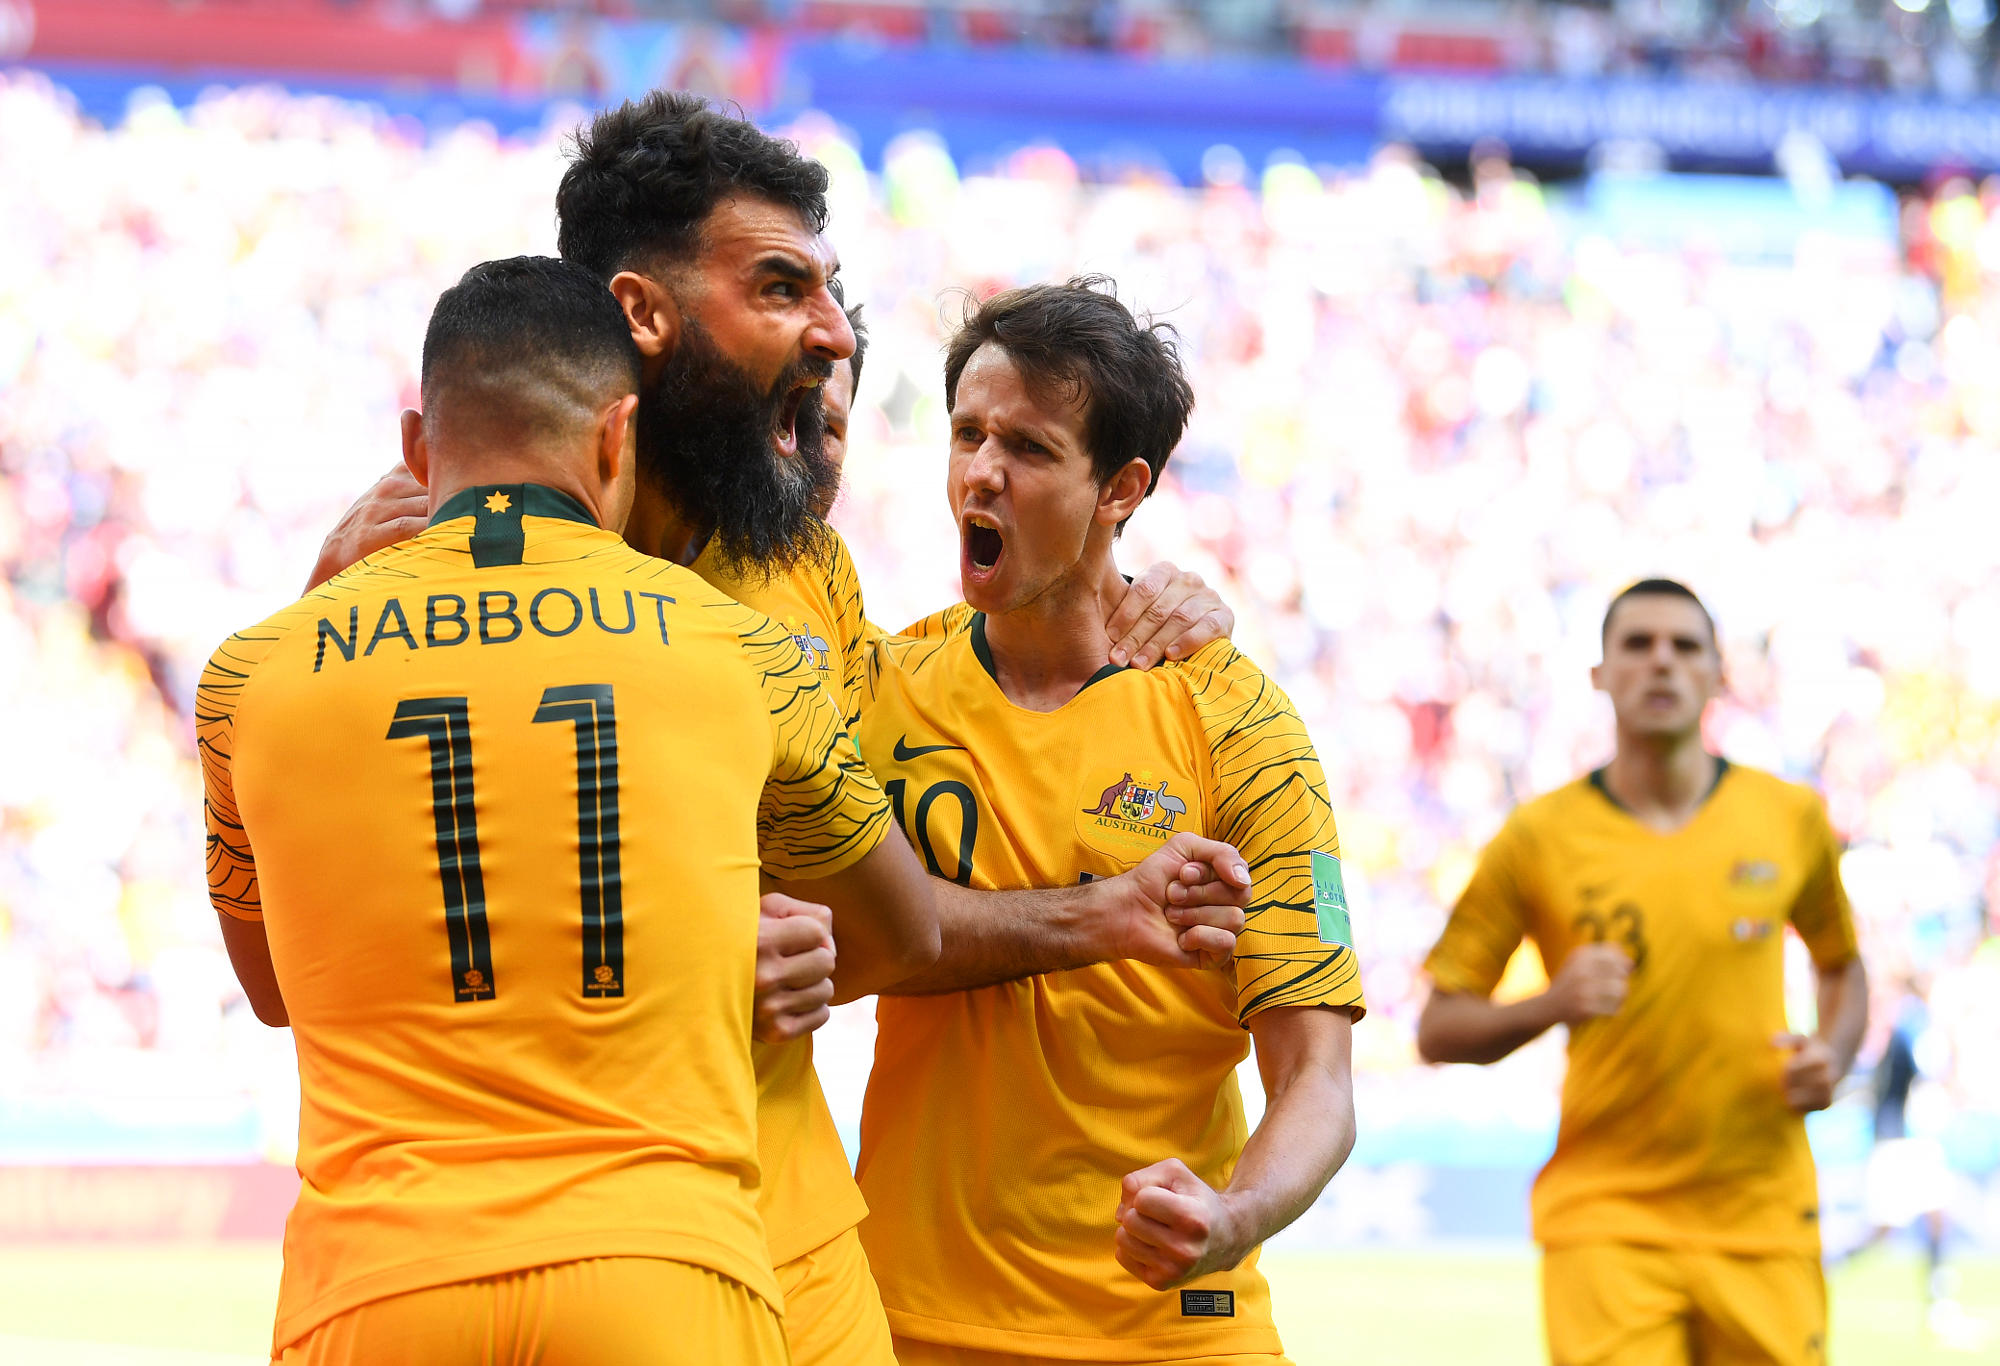 Mile Jedinak of Australia celebrates scoring a goal at the World Cup